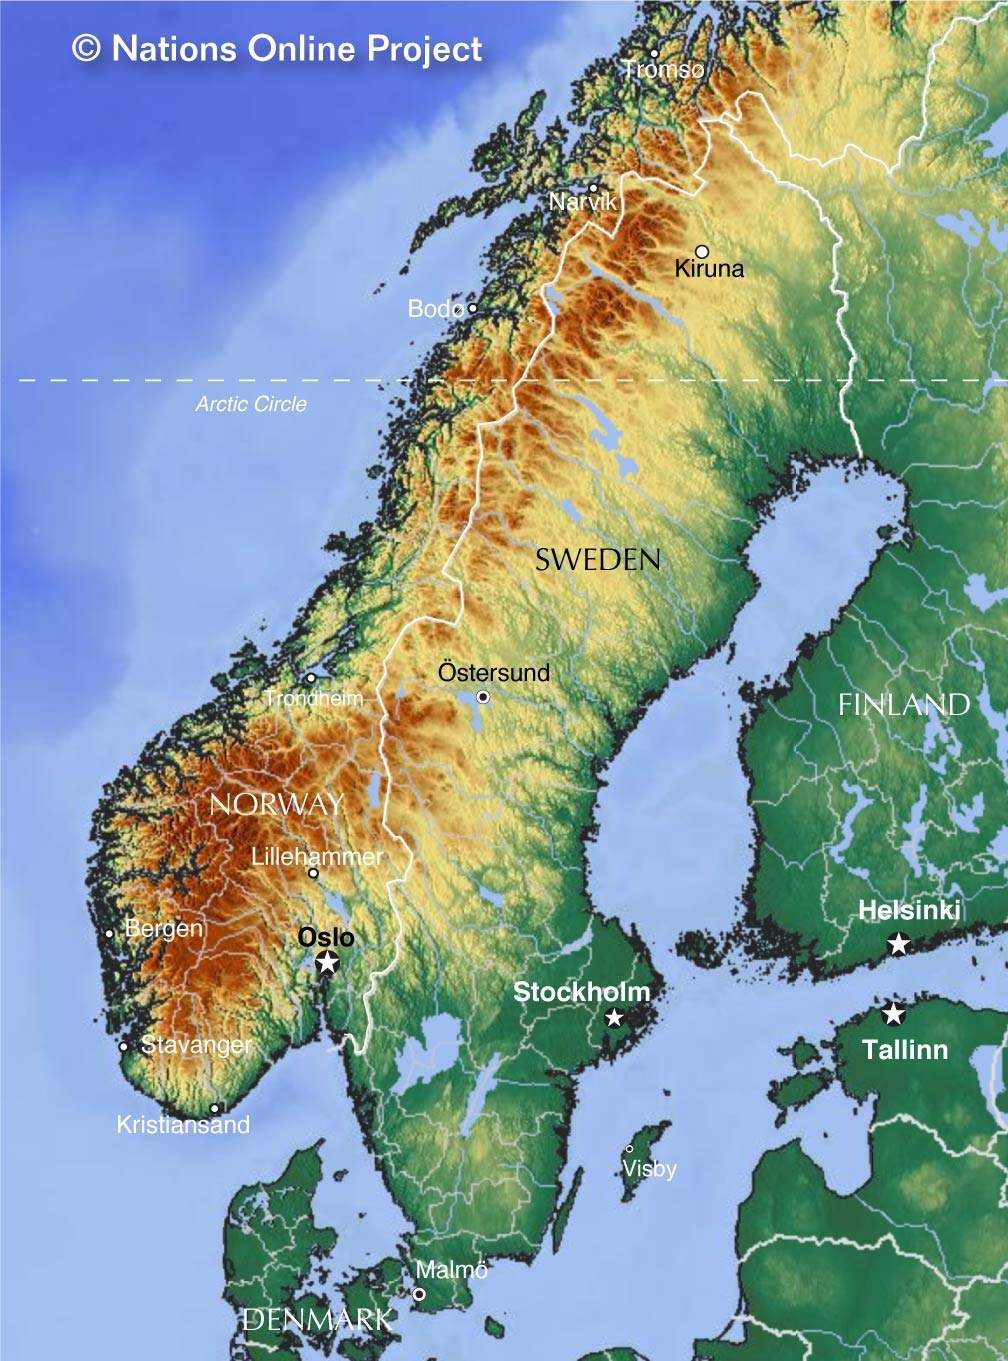 Topographic map of the Scandinavian Peninsula showing Sweden and Norway